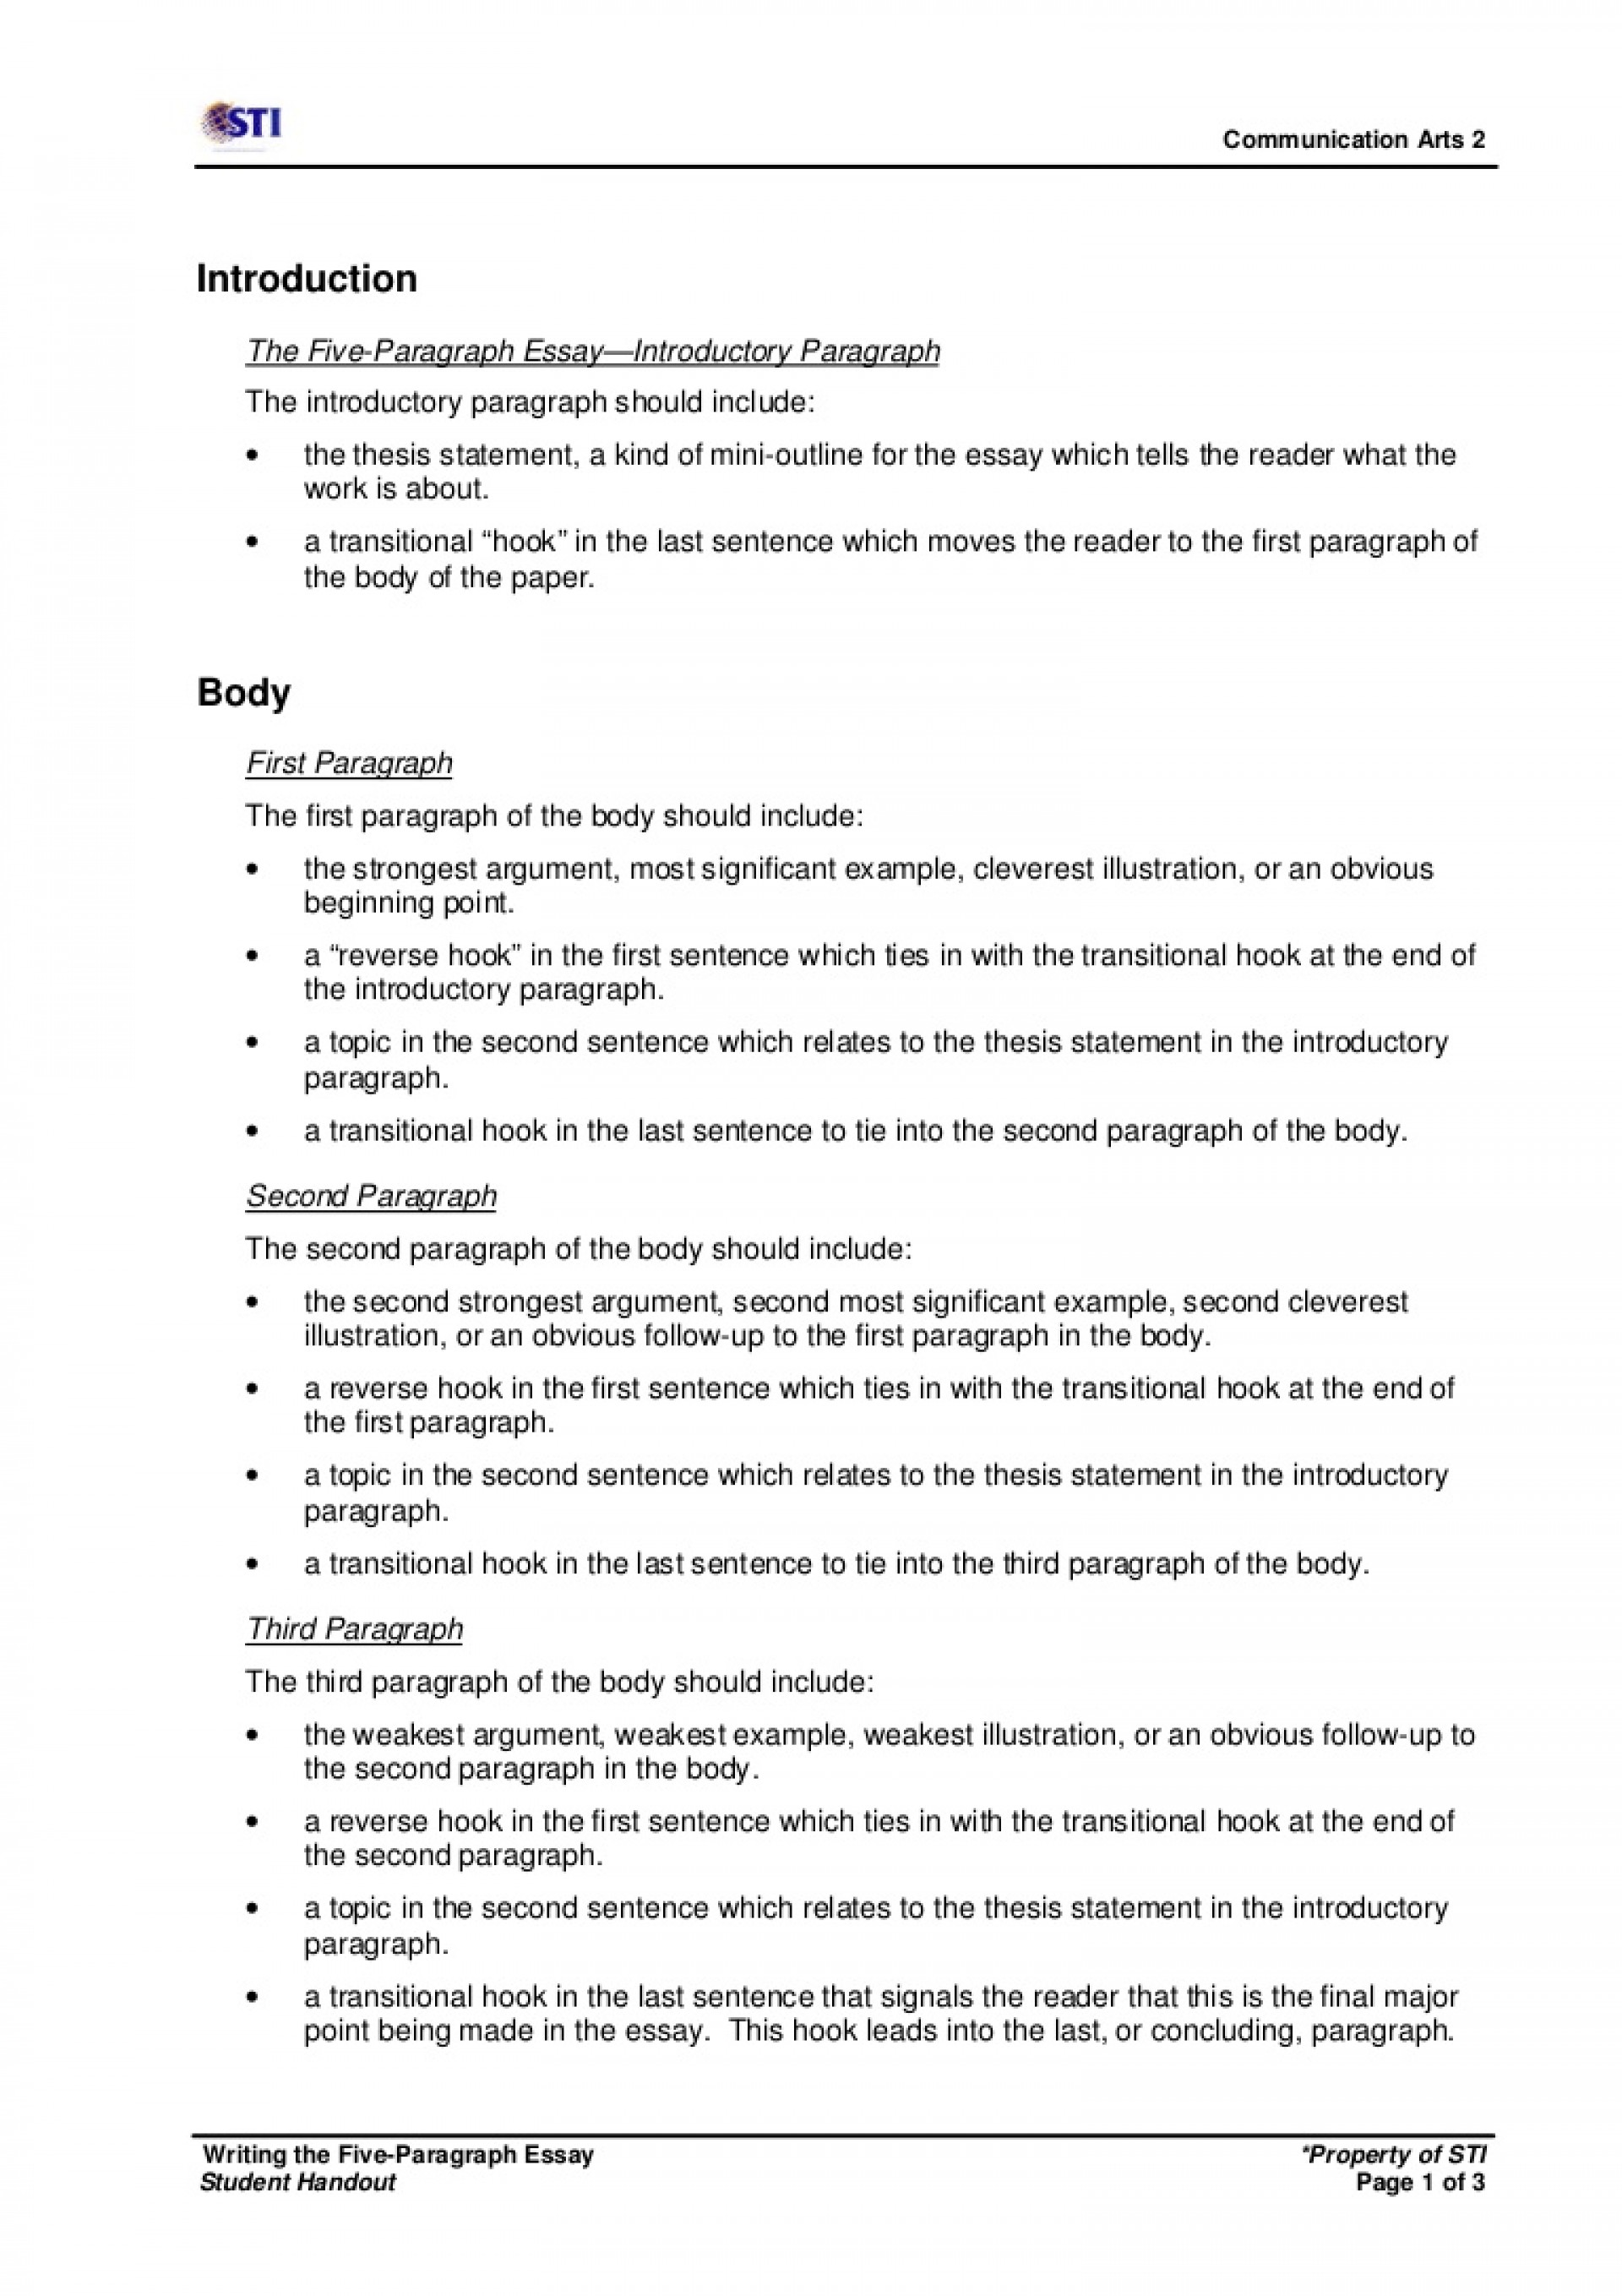 012 Essay Example First Sentence Of An Week16sessions46 48writingthefive Paragraphessays Handout Phpapp02 Thumbnail Frightening Academic Good Writing The Draft 1920